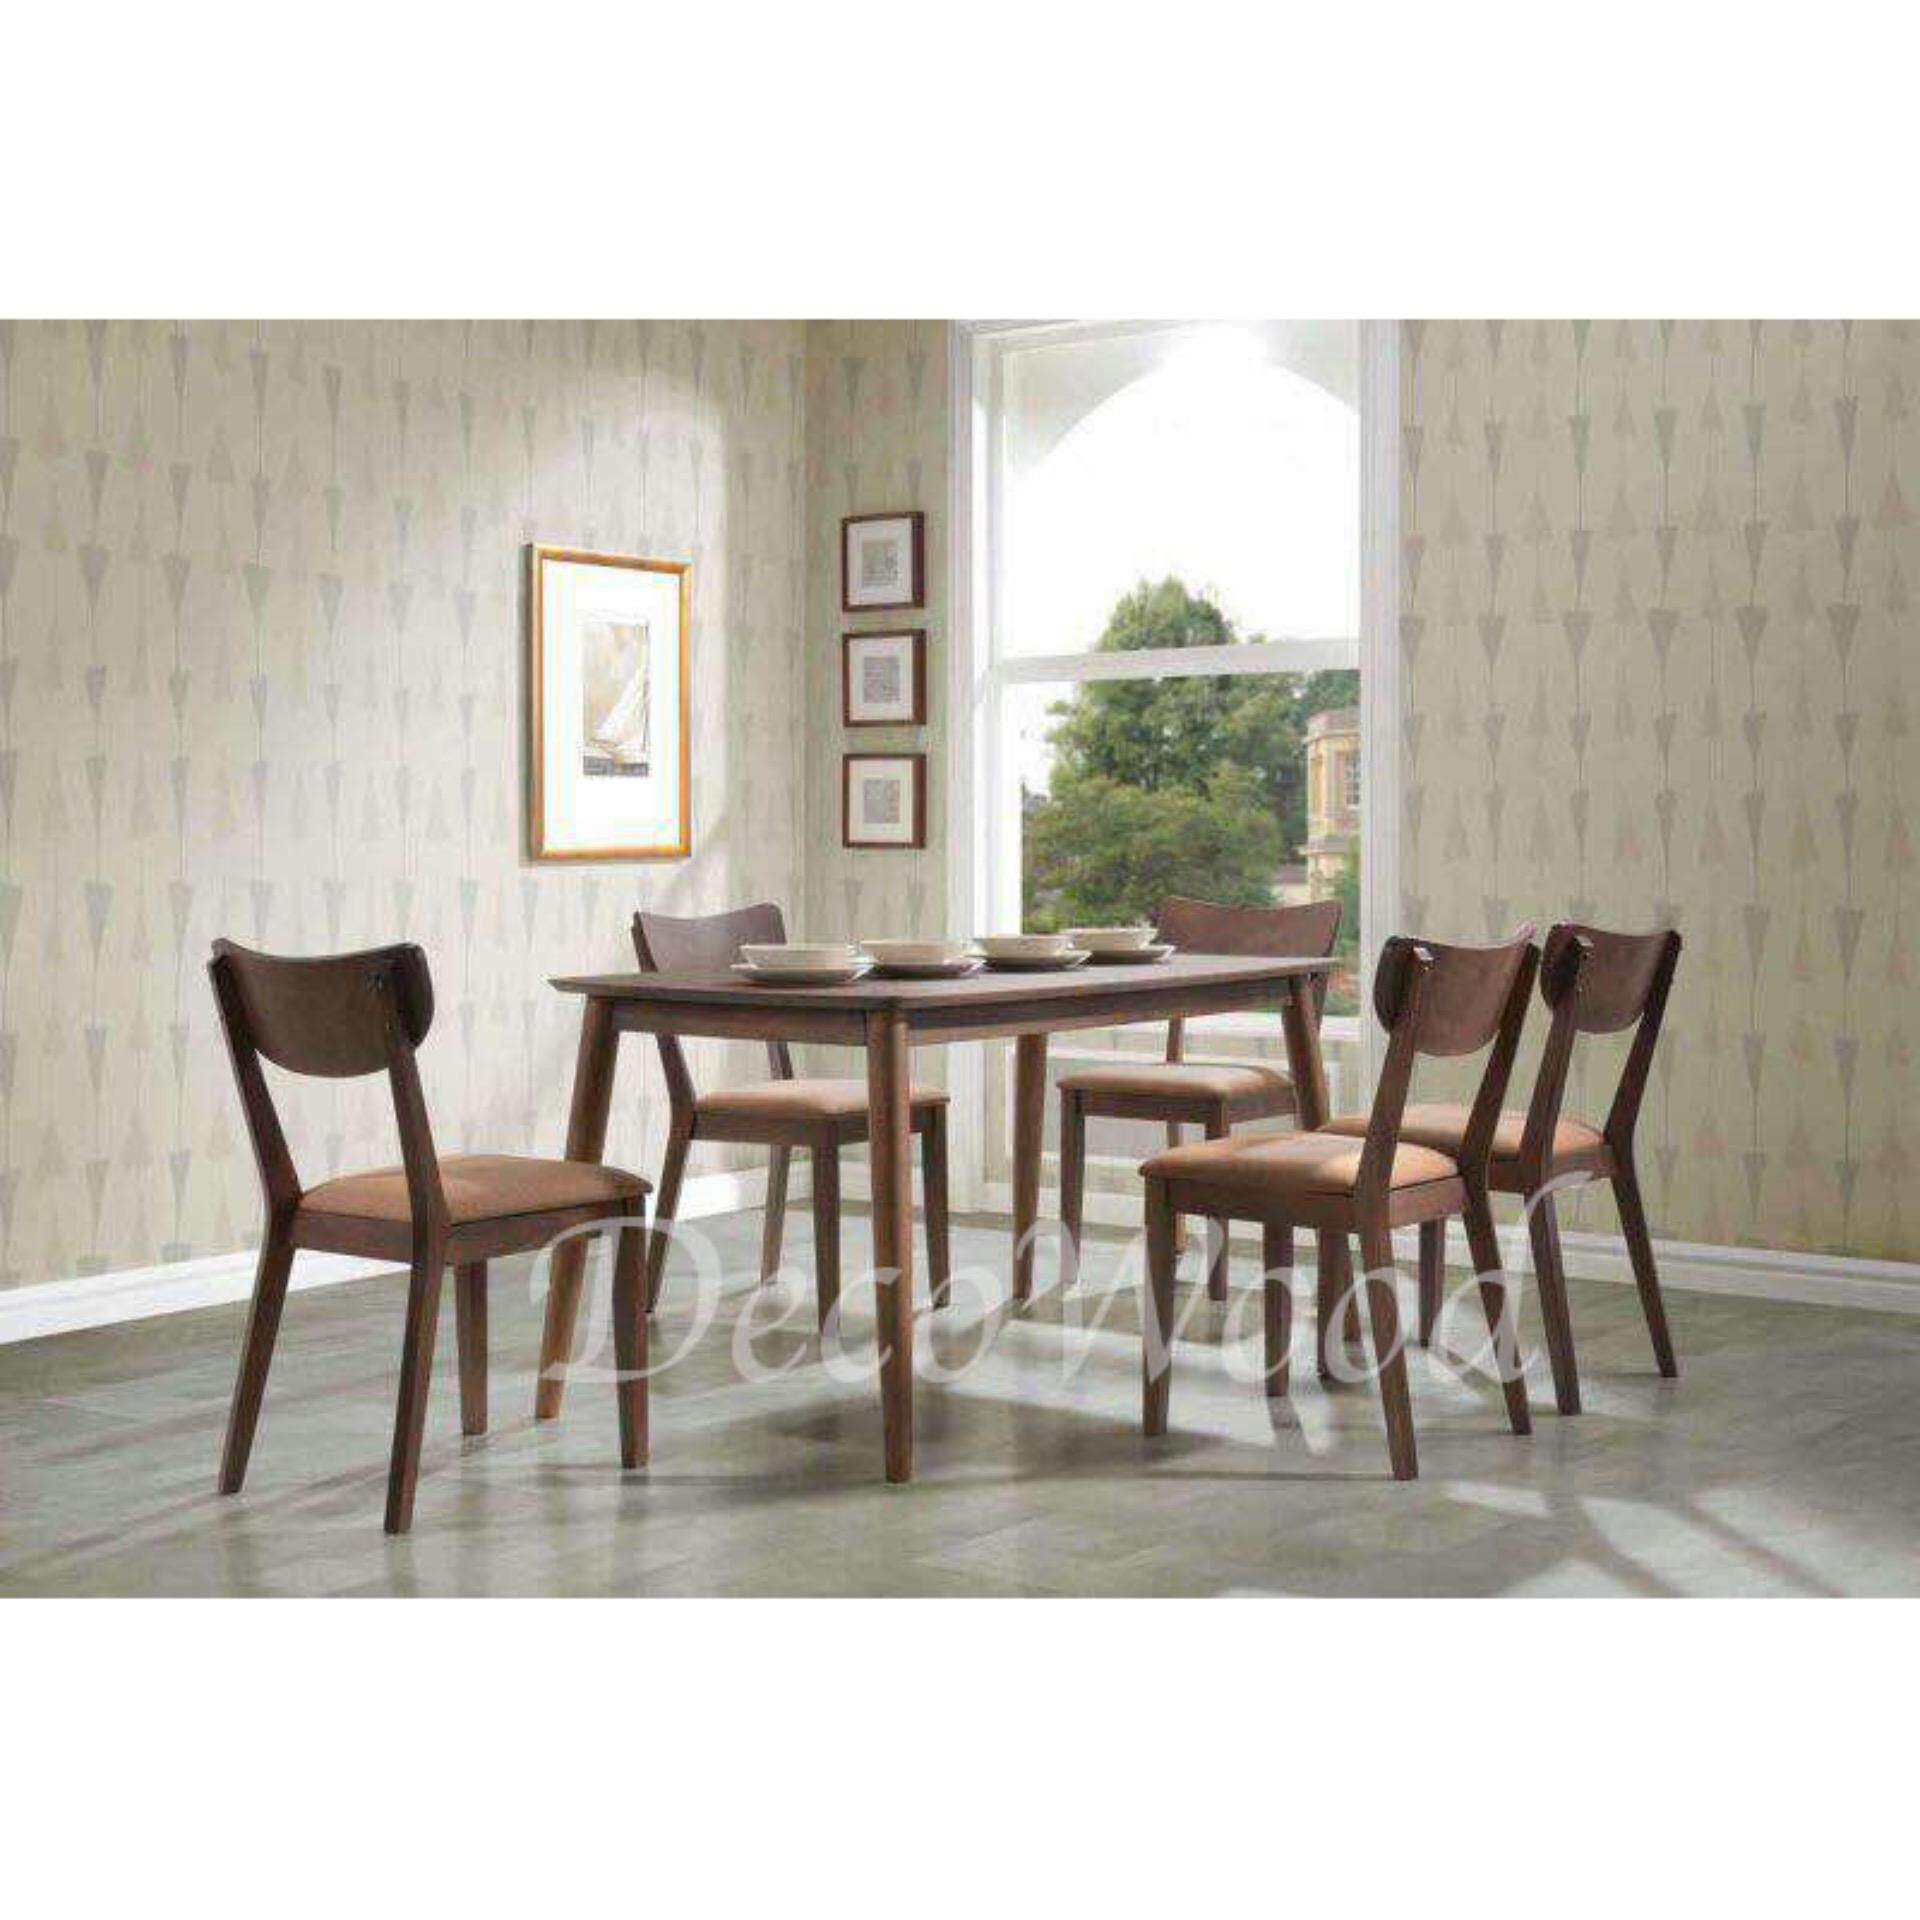 Solid Wood 1+6 Dining Table Cushion Chair Dining Set (Brown Color) L1500MM X W900MM X H750MM Pre Order 2 Week